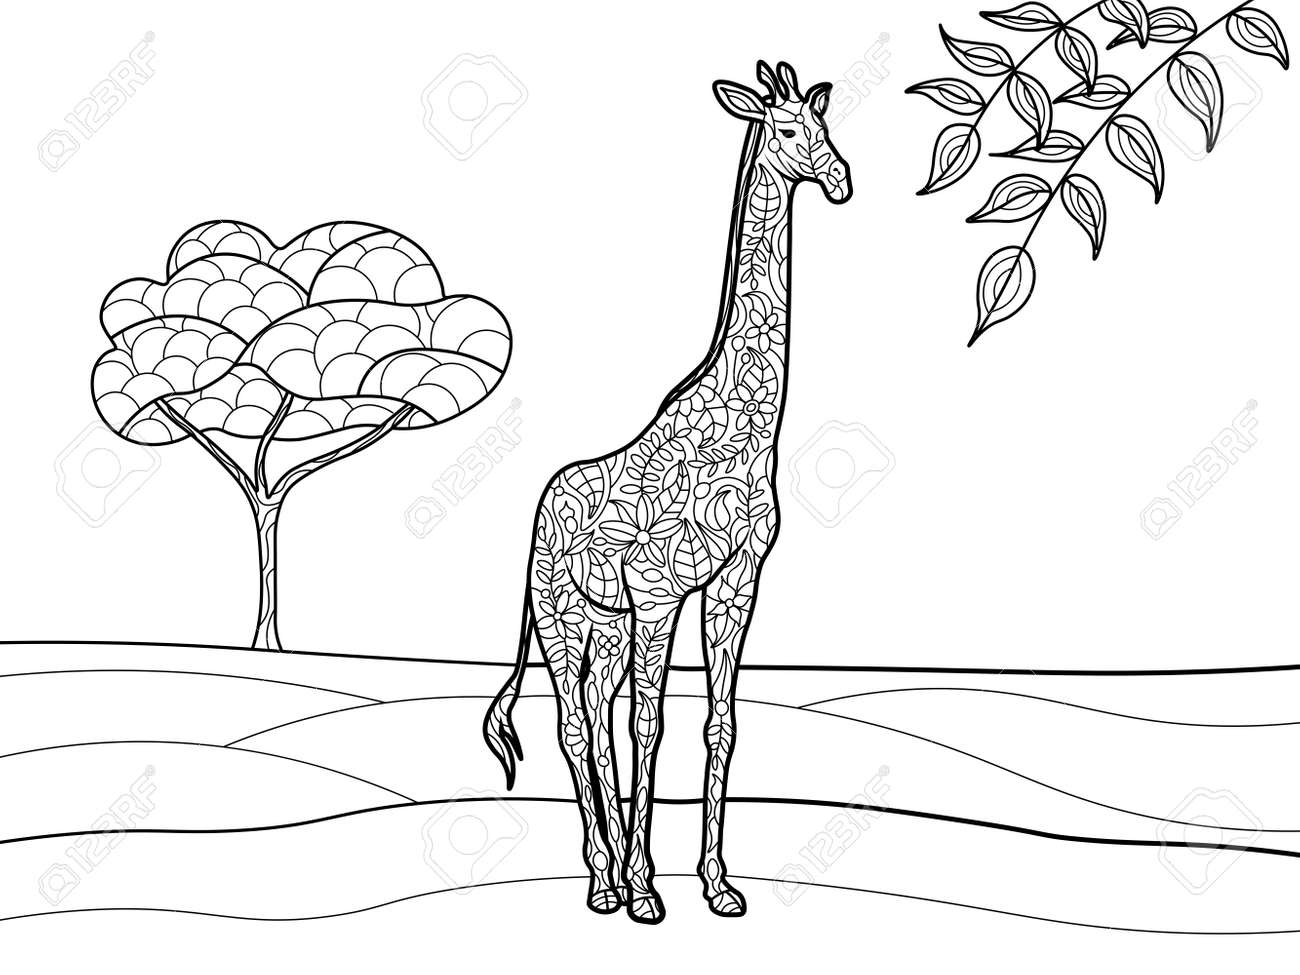 Giraffe Coloring Book For Adults Vector Illustration. Black And ...